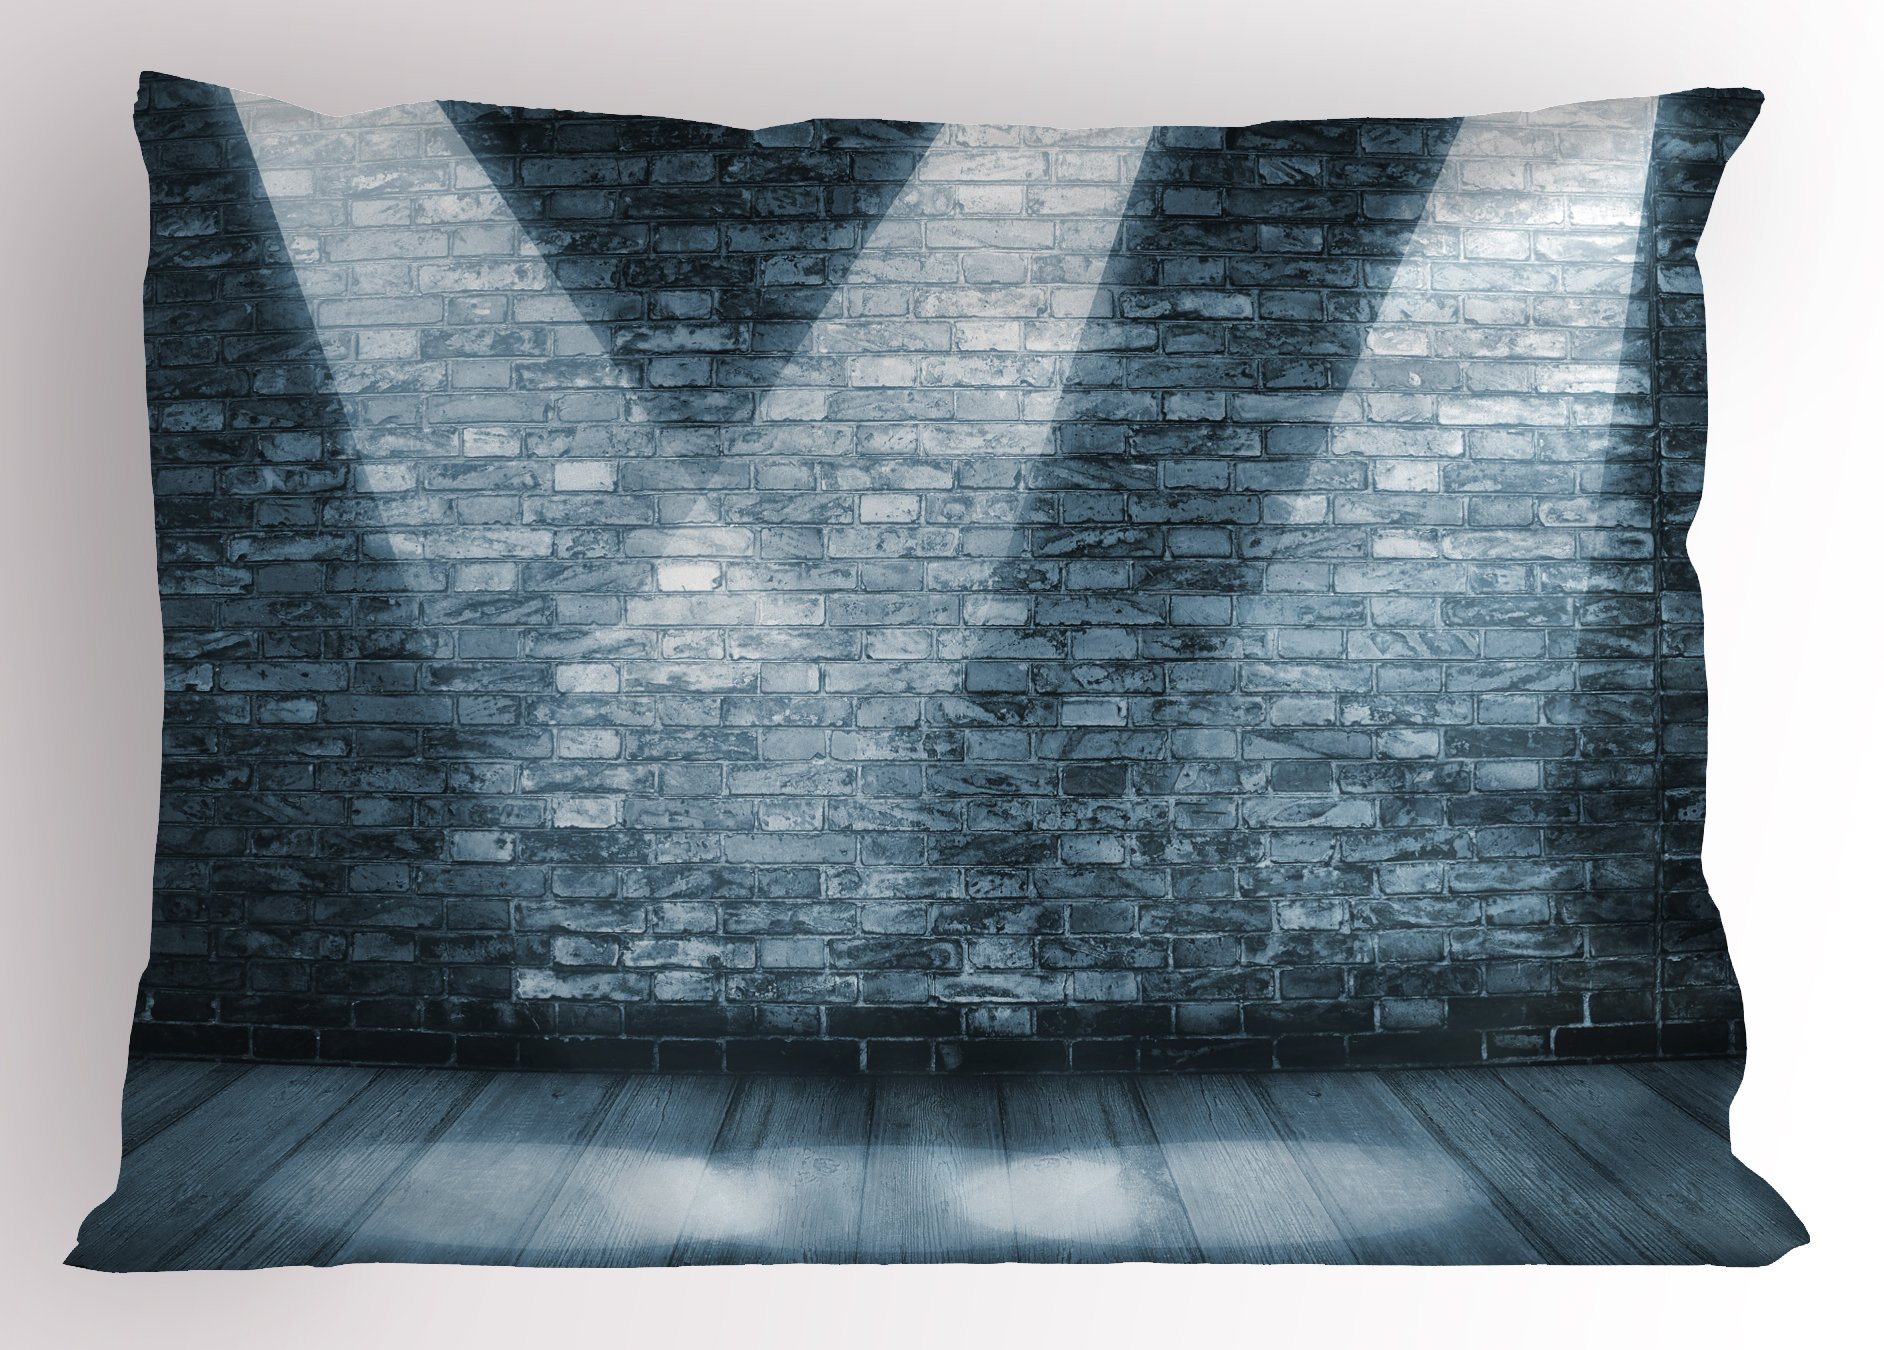 Lunarable Grunge Pillow Sham, Brick Wall in a Room with Interior Luminous Shine Spot Light Projection Picture, Decorative Standard Size Printed Pillowcase, 26 X 20 inches, Blue and Grey